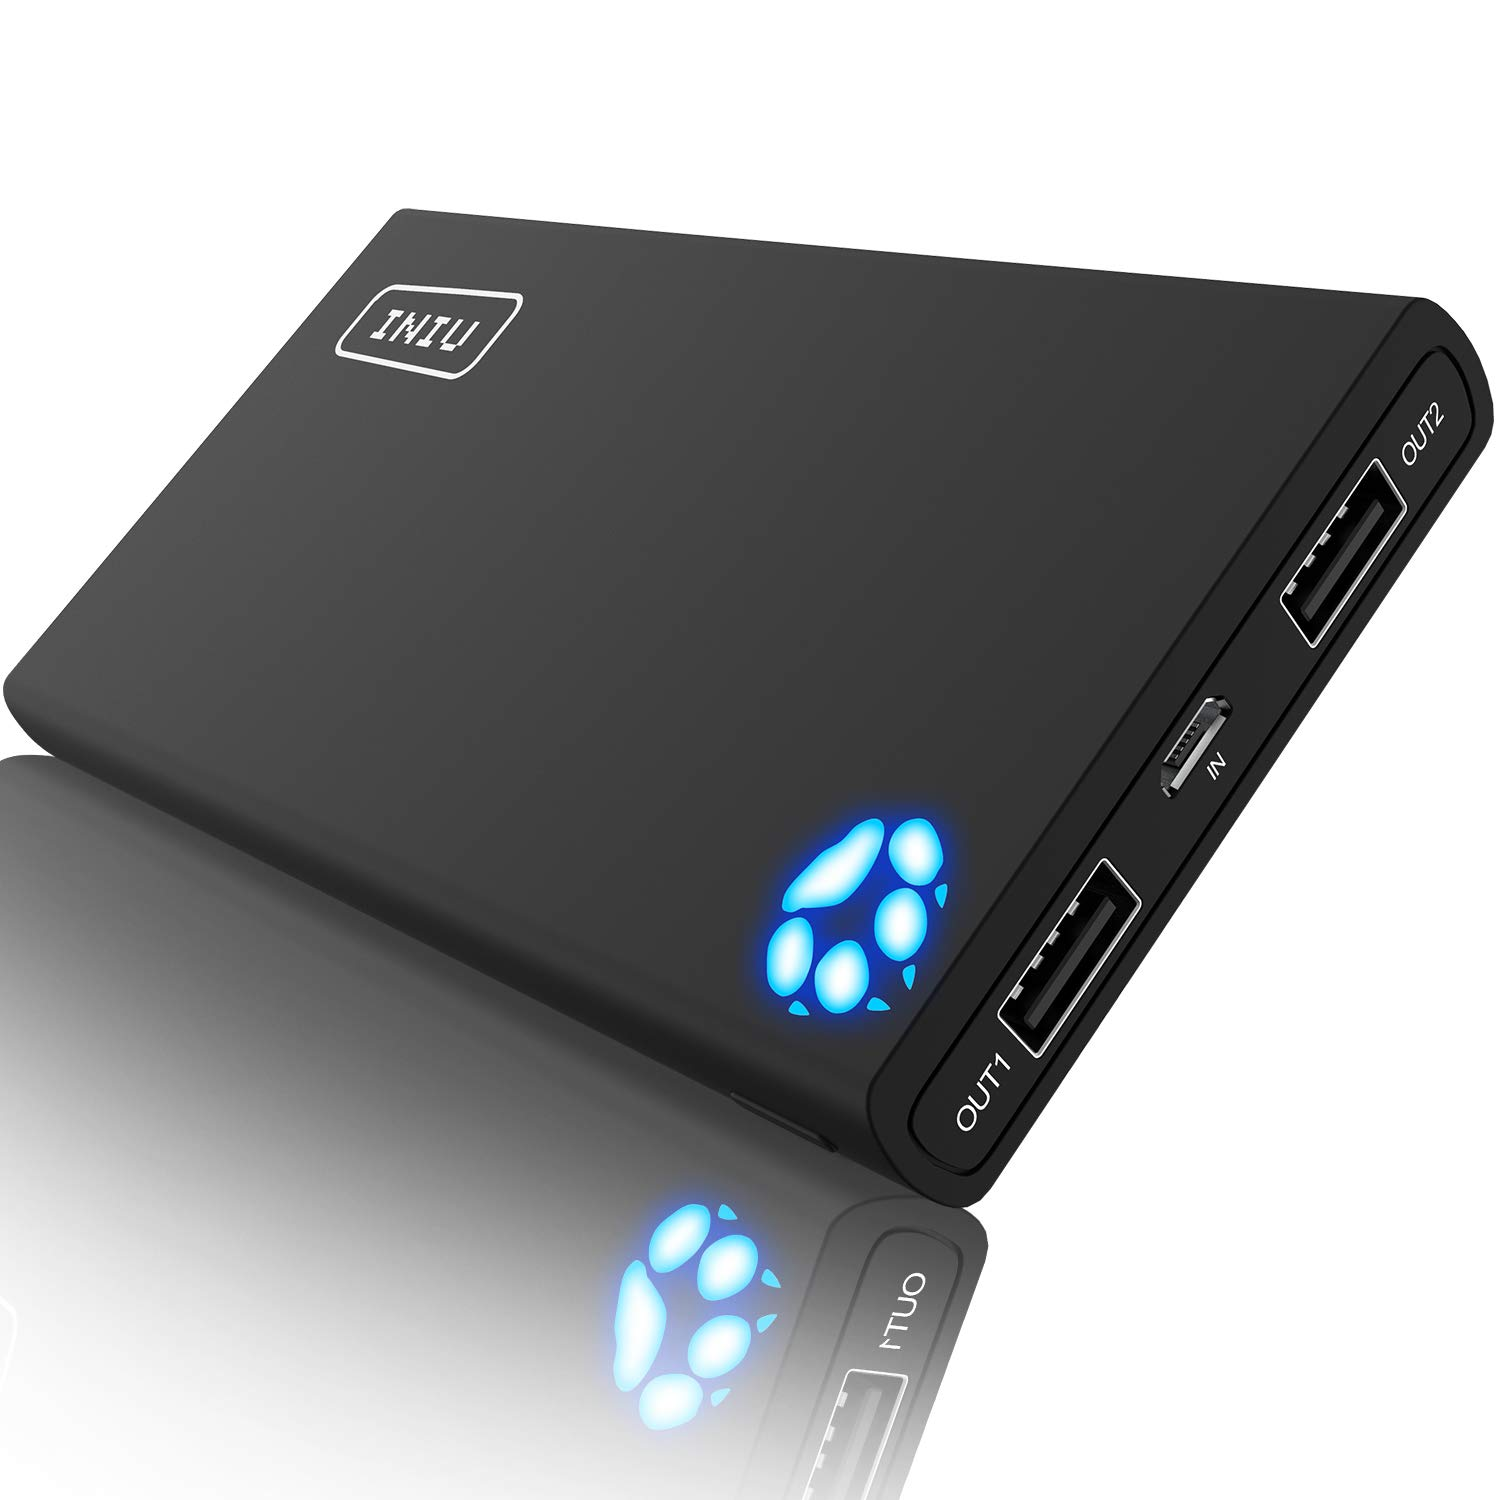 INIU Portable Charger 10000mAh Power Bank High-Speed 2 USB Ports with Flashlight External Battery Backup Ultra Compact Slim Powerbank Compatible with iPhone X 8 7 6s 6 Plus 5s 5 Samsung Cell Phone